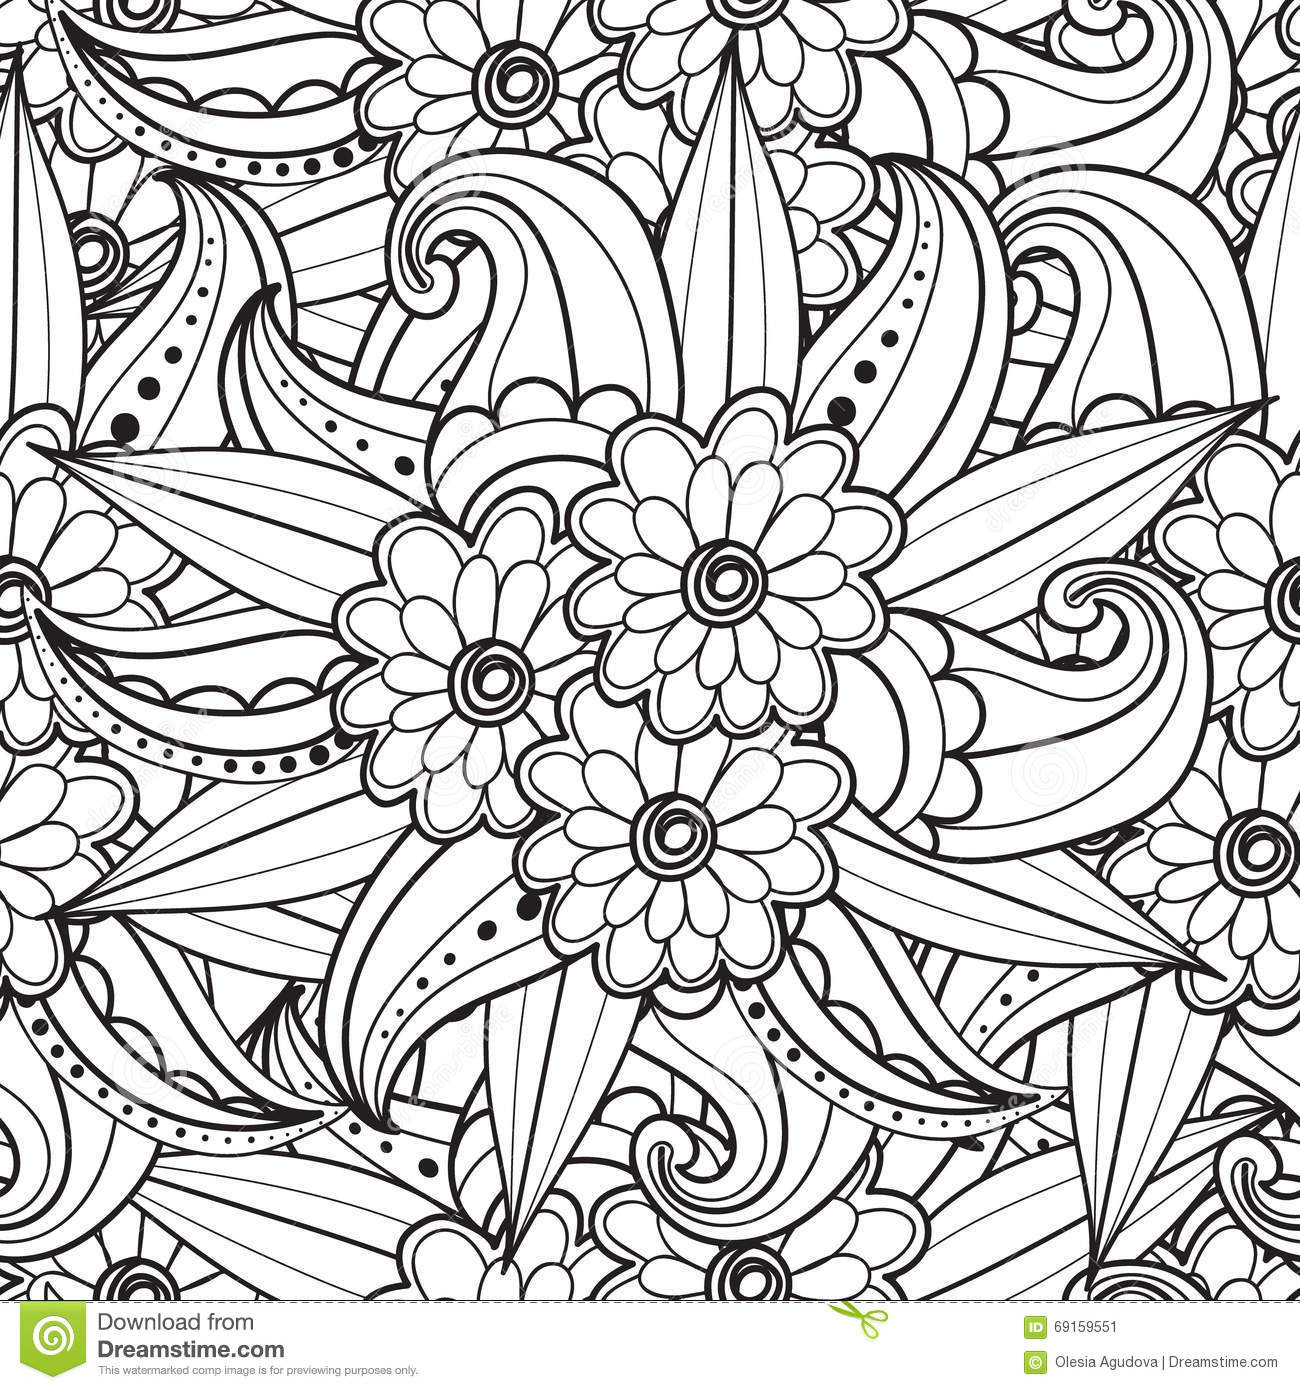 Hand Drawn Coloring Pages  Pages For Adult Coloring Book Hand Drawn Artistic Ethnic